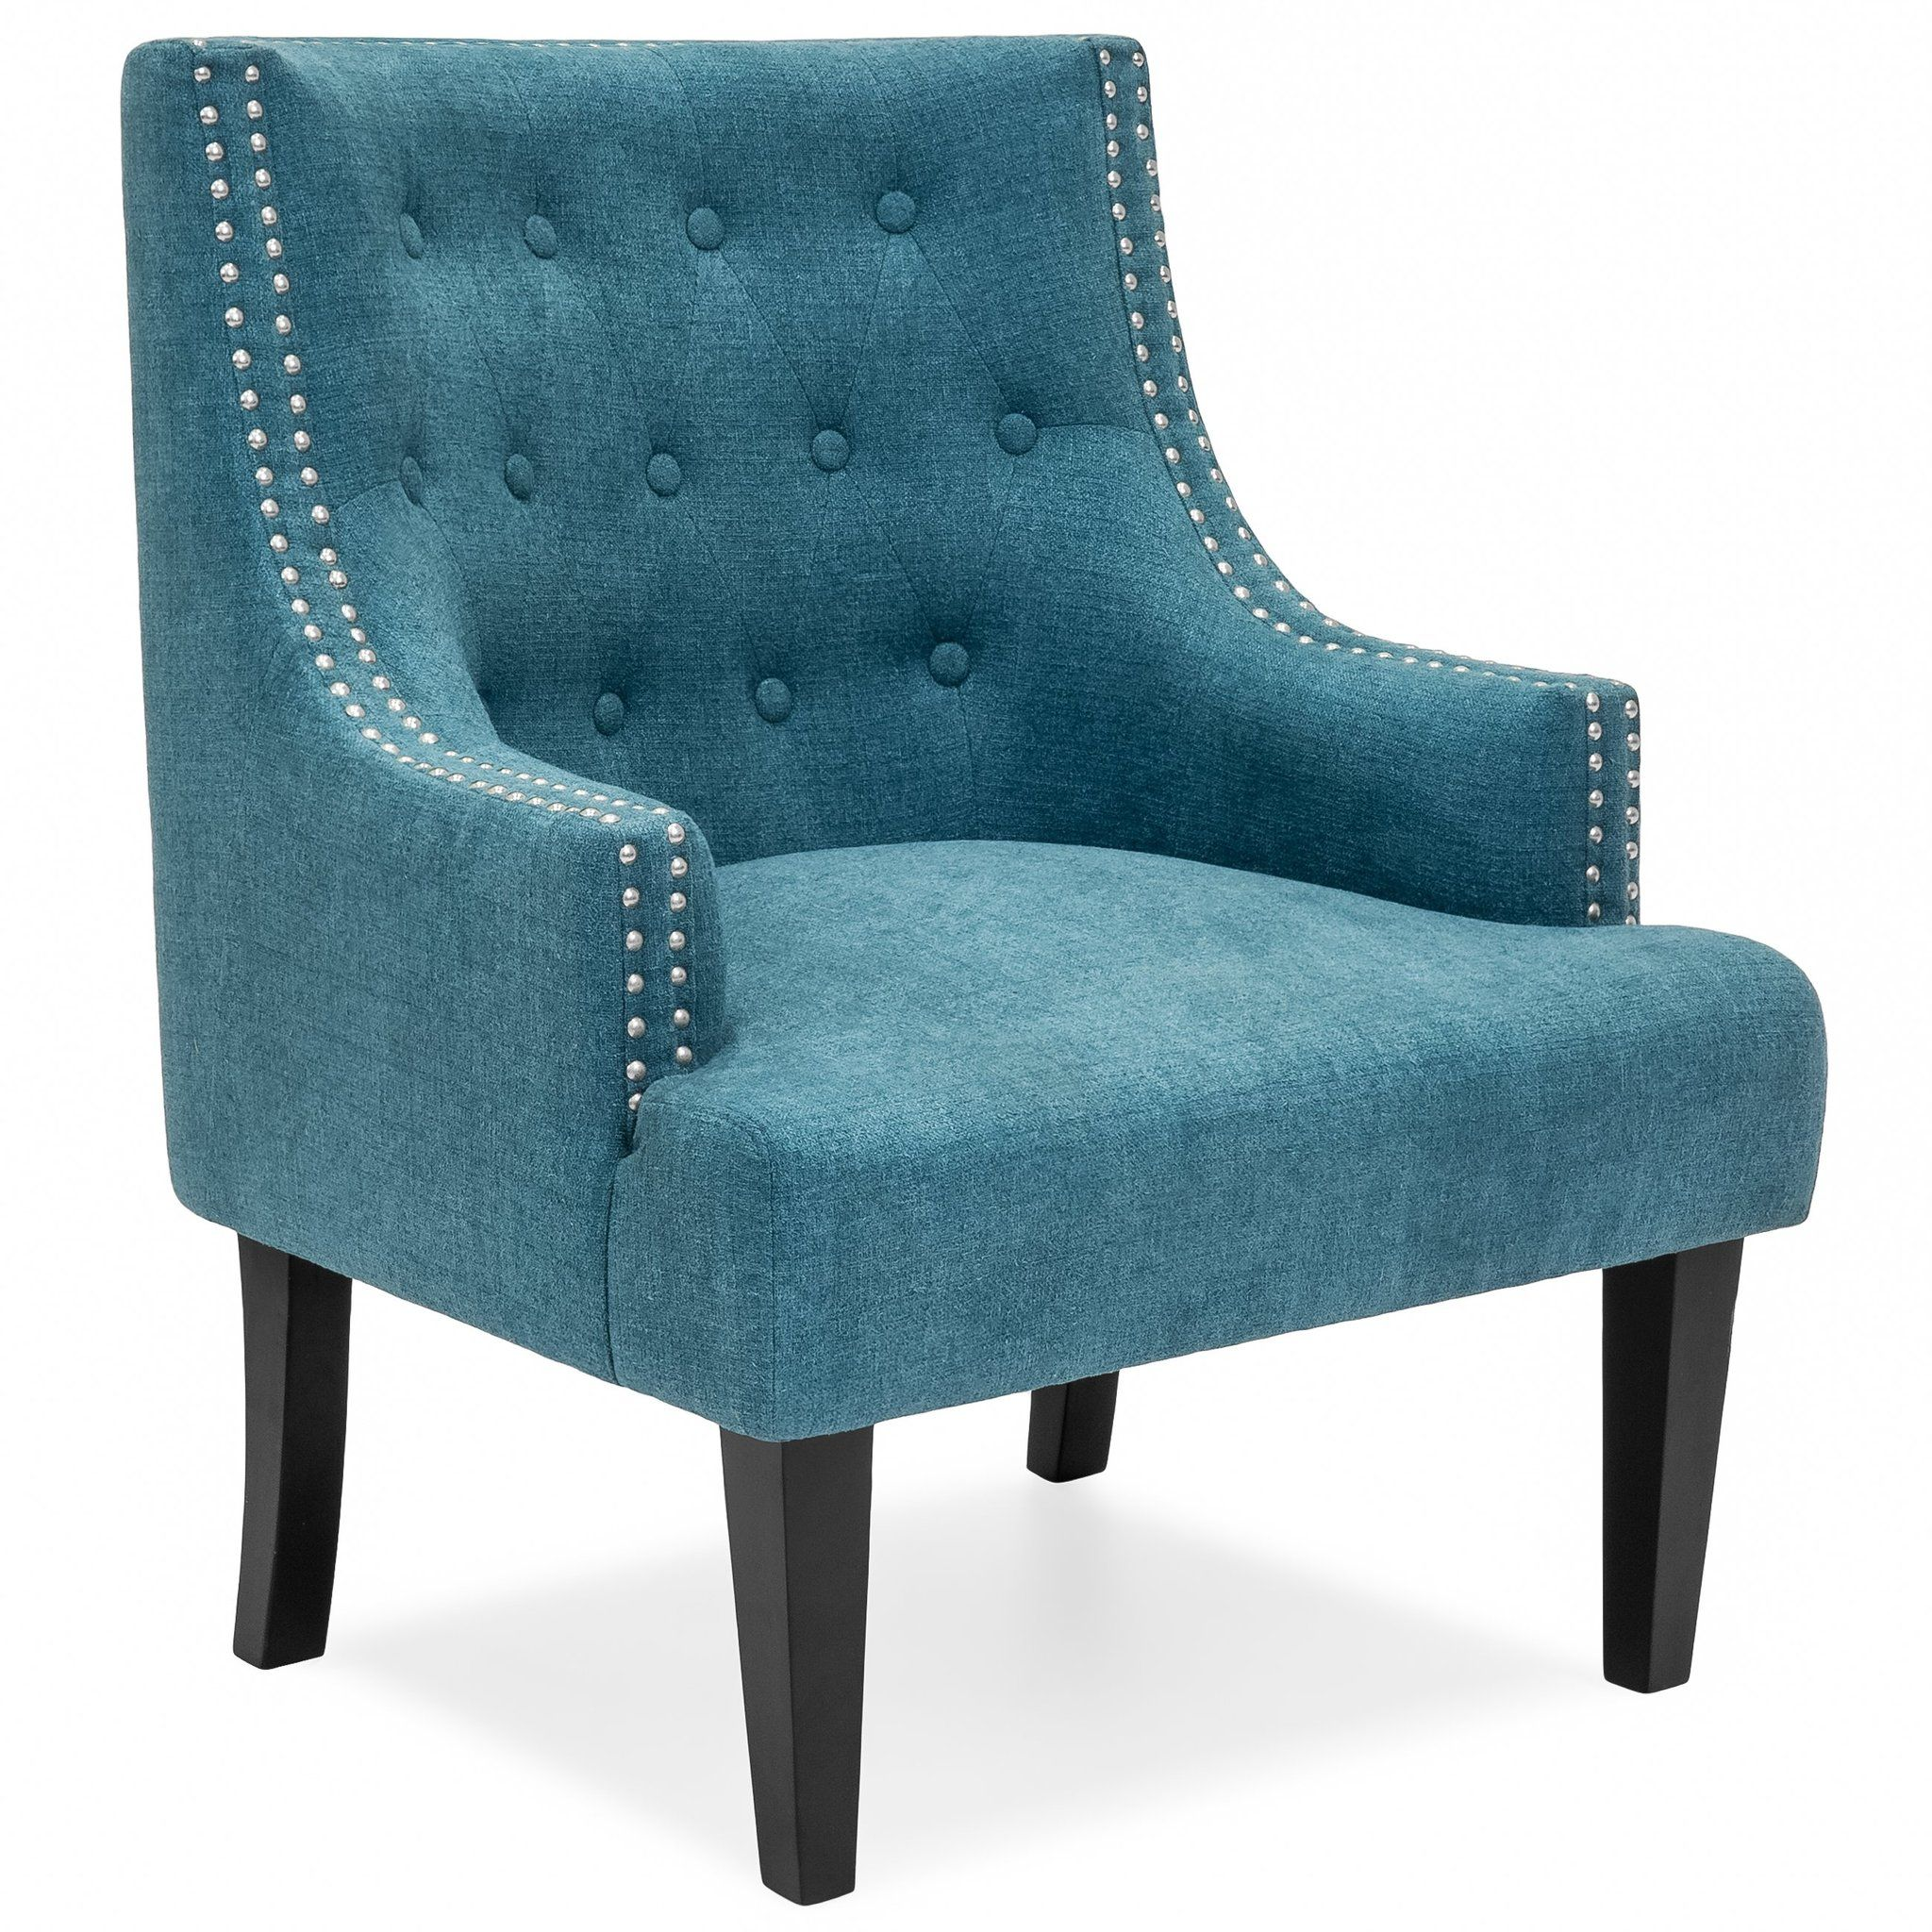 Classic Tufted Accent Chair w/ Nailhead Details & Wooden